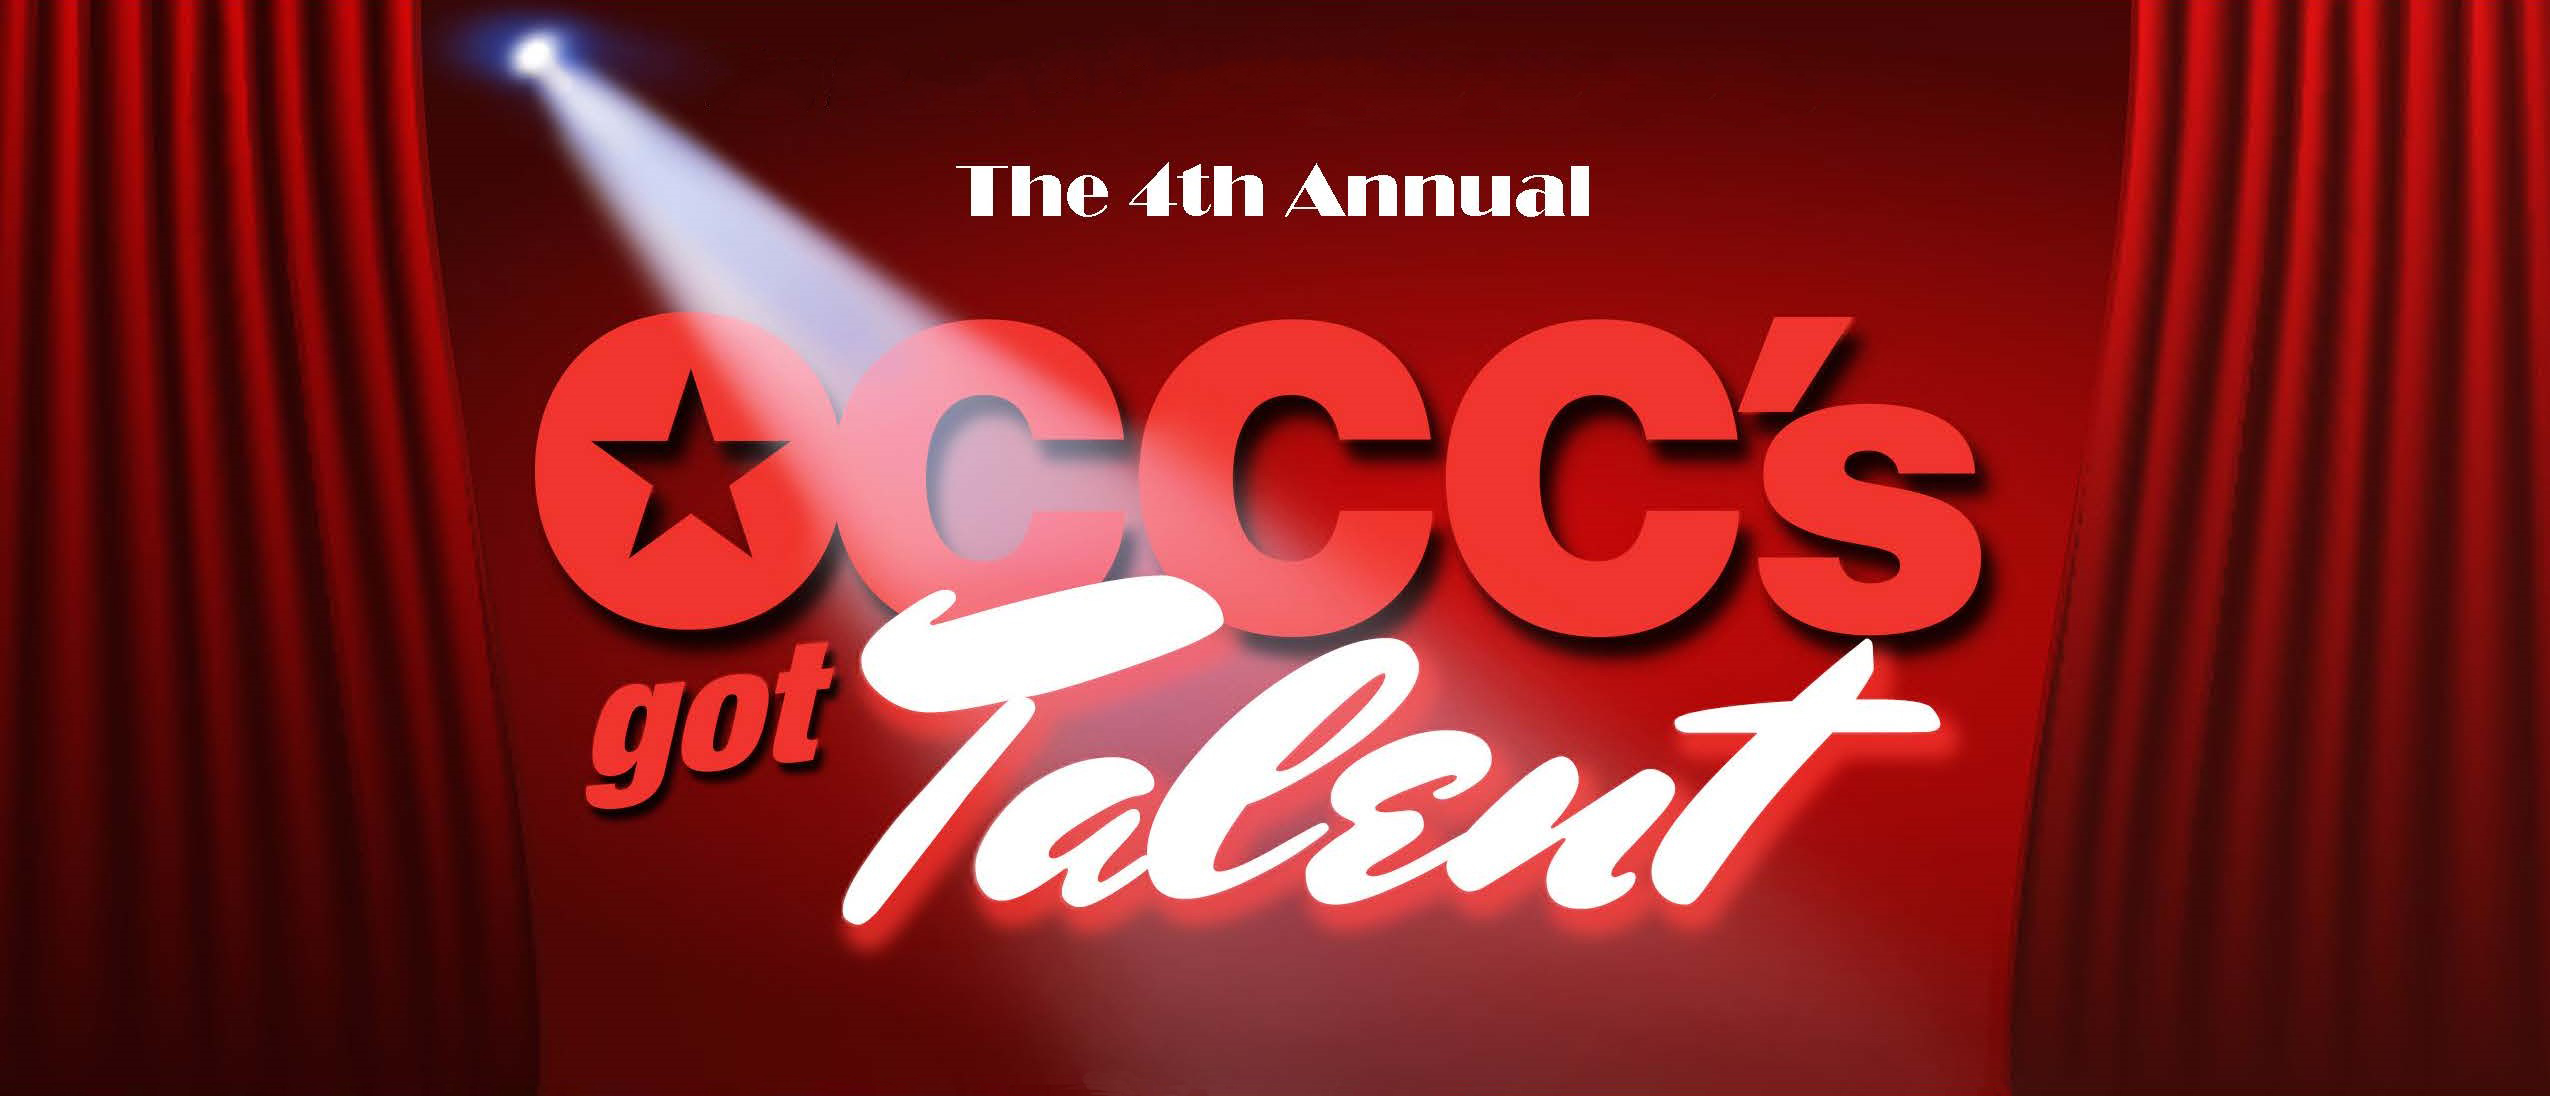 'OCCC's Got Talent' Finalists Announced